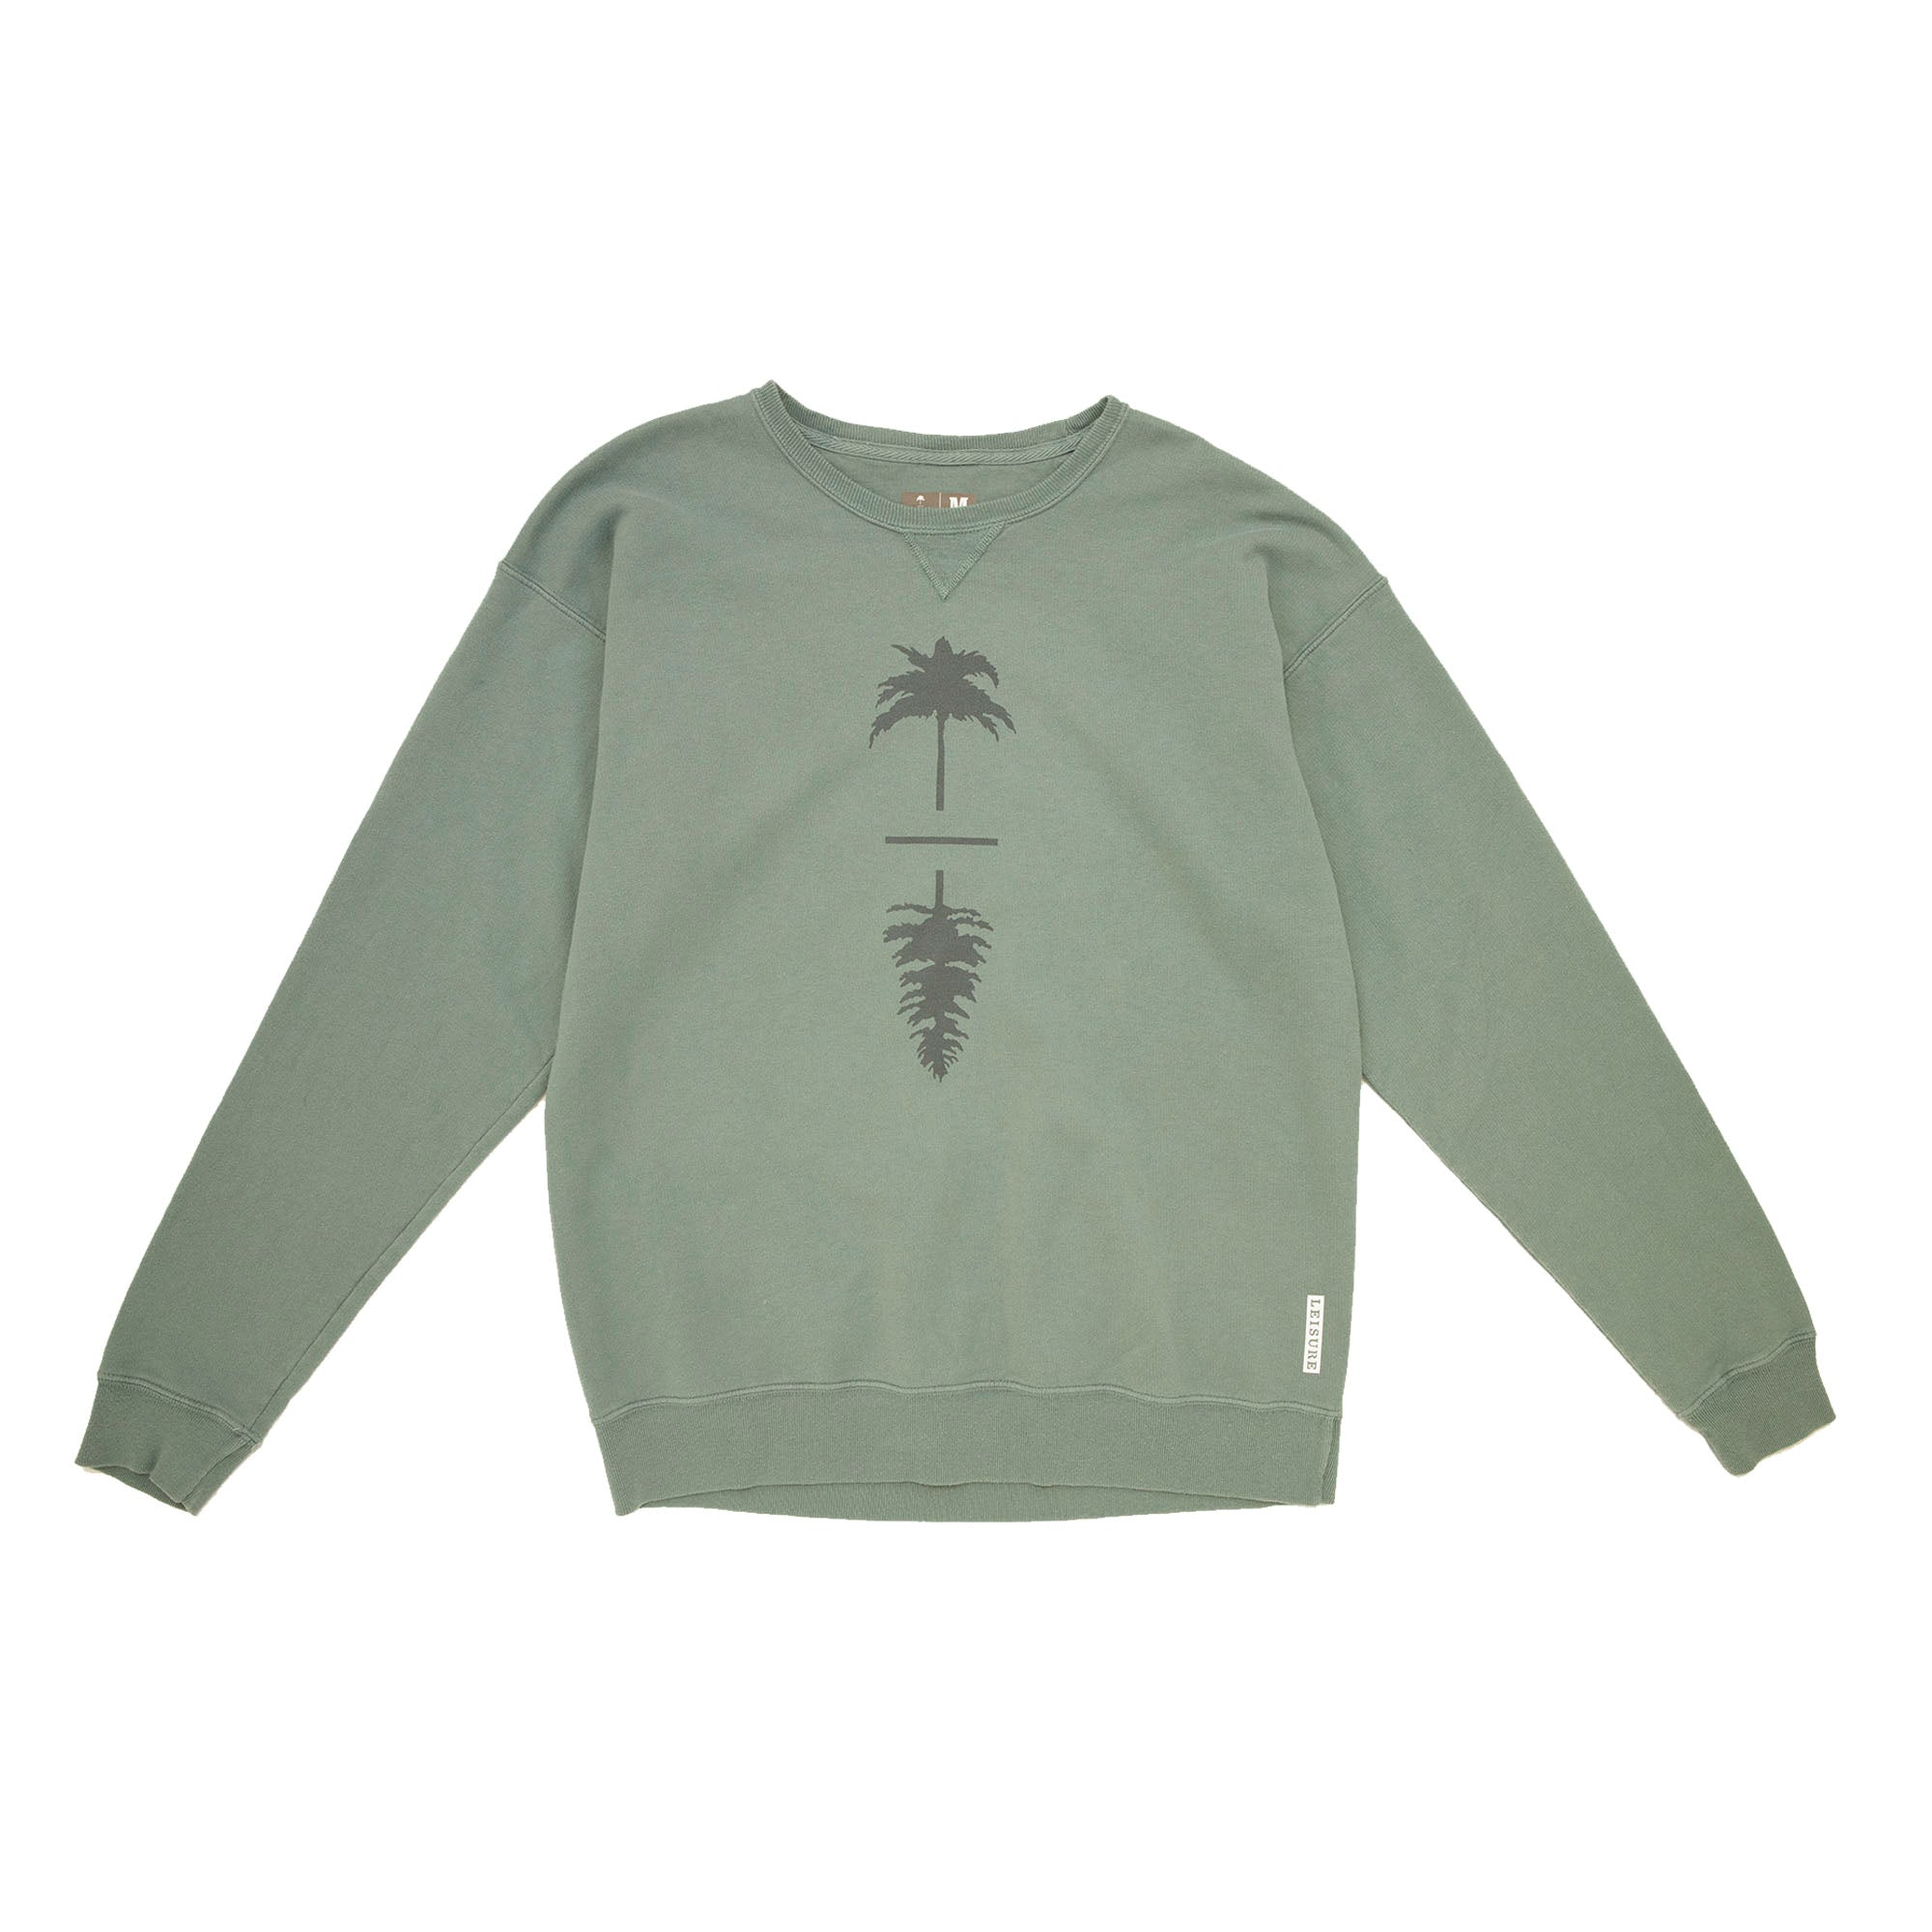 Old Soul Vintage Wash Old Growth Palm To Pine Crewneck